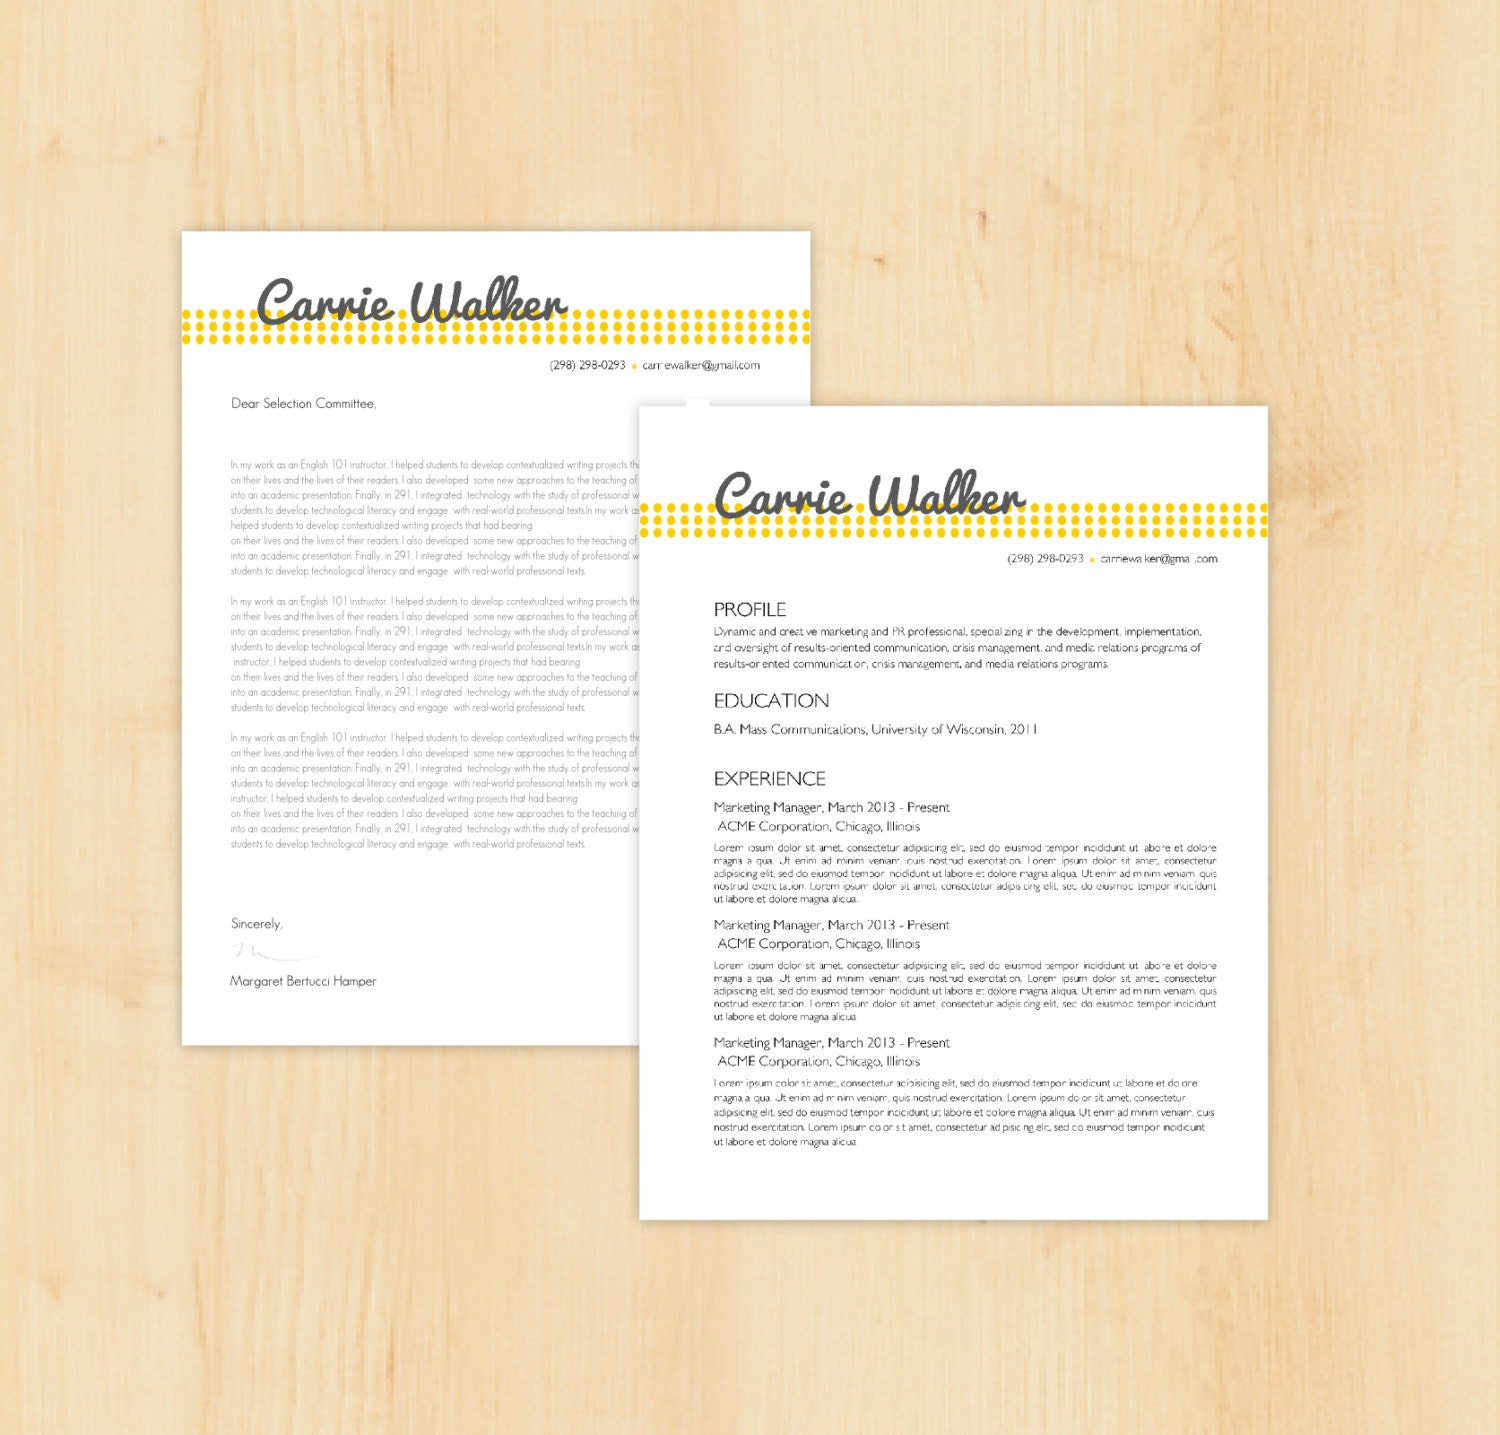 Resume Template Cover Letter Template The Sara By Phdpress: Resume Template / Cover Letter Template The Carrie By PhDPress